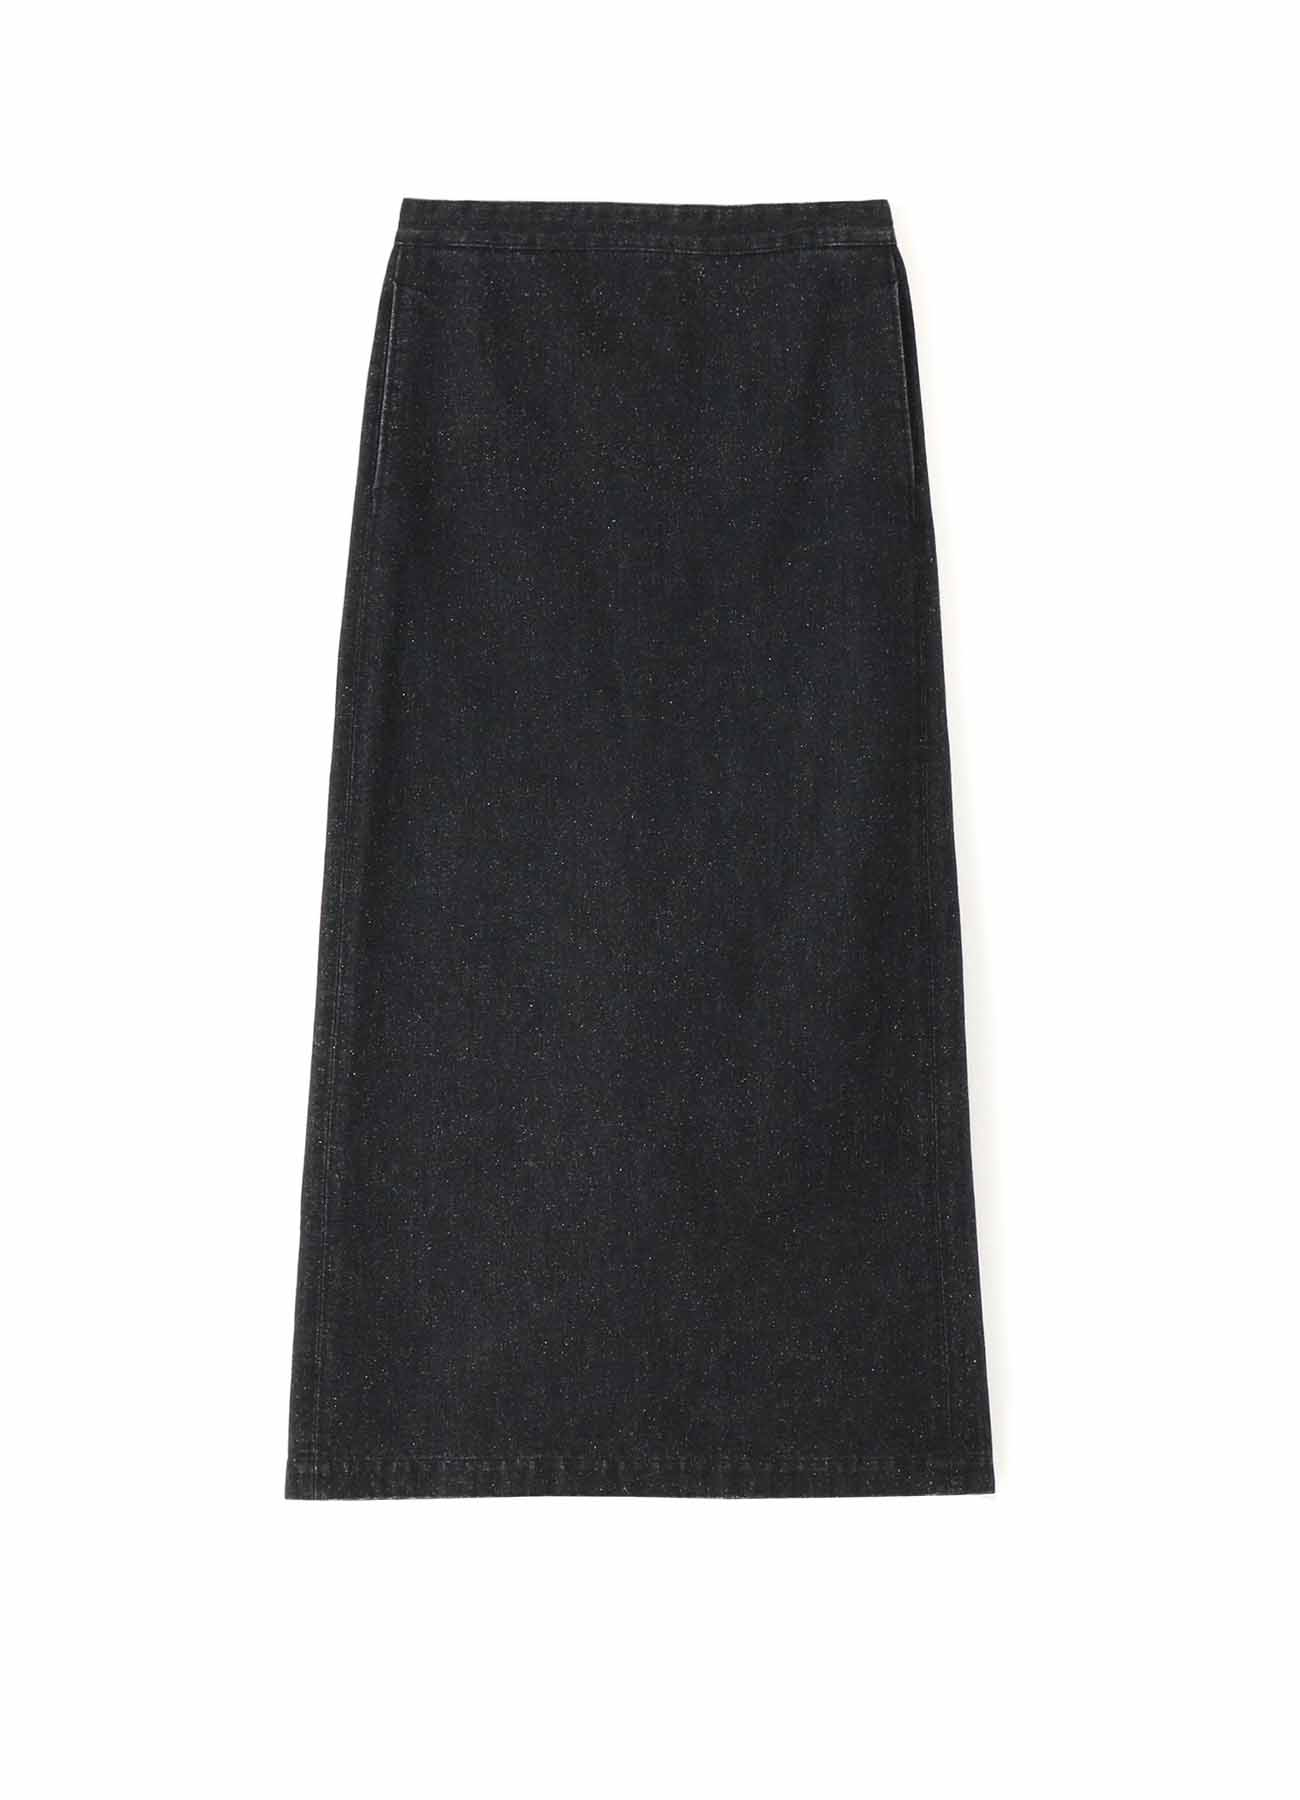 SELVAGE DENIM REGULAR TIGHT SKIRT